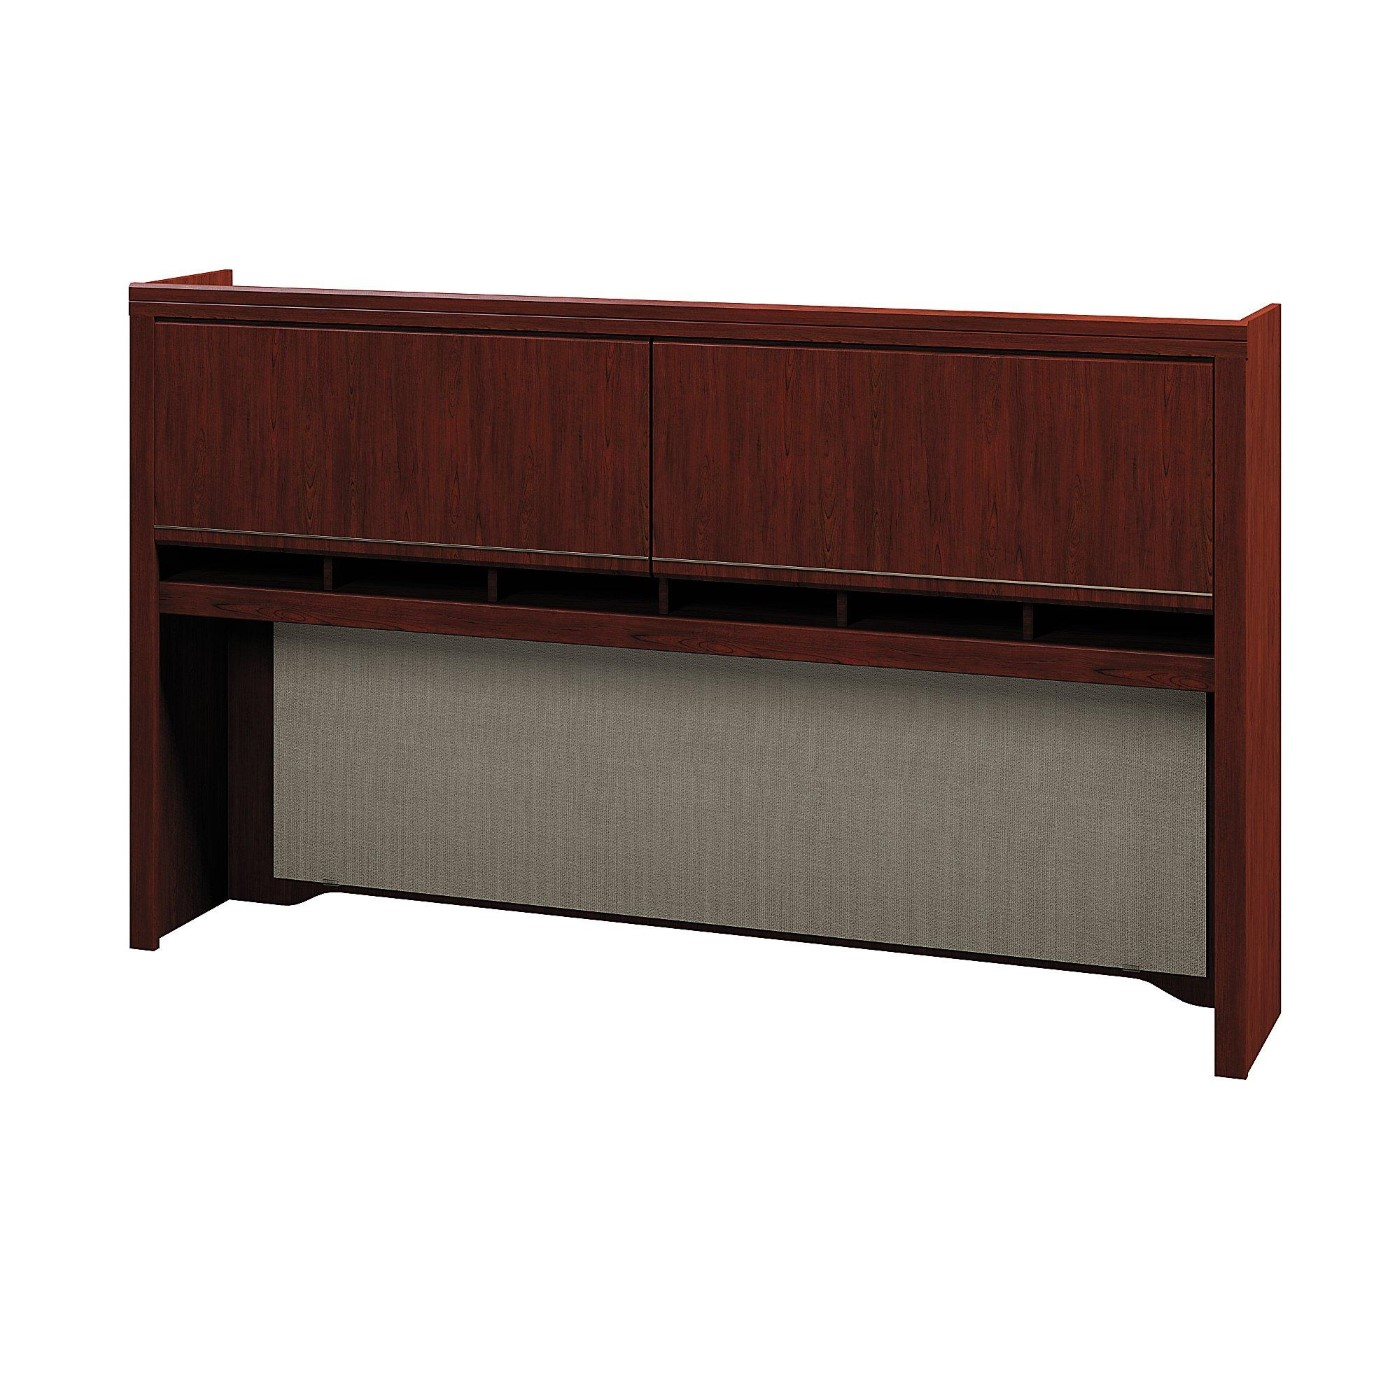 <font color=#c60><b>BUSH BUSINESS FURNITURE ENTERPRISE 72W HUTCH. FREE SHIPPING</font></b>